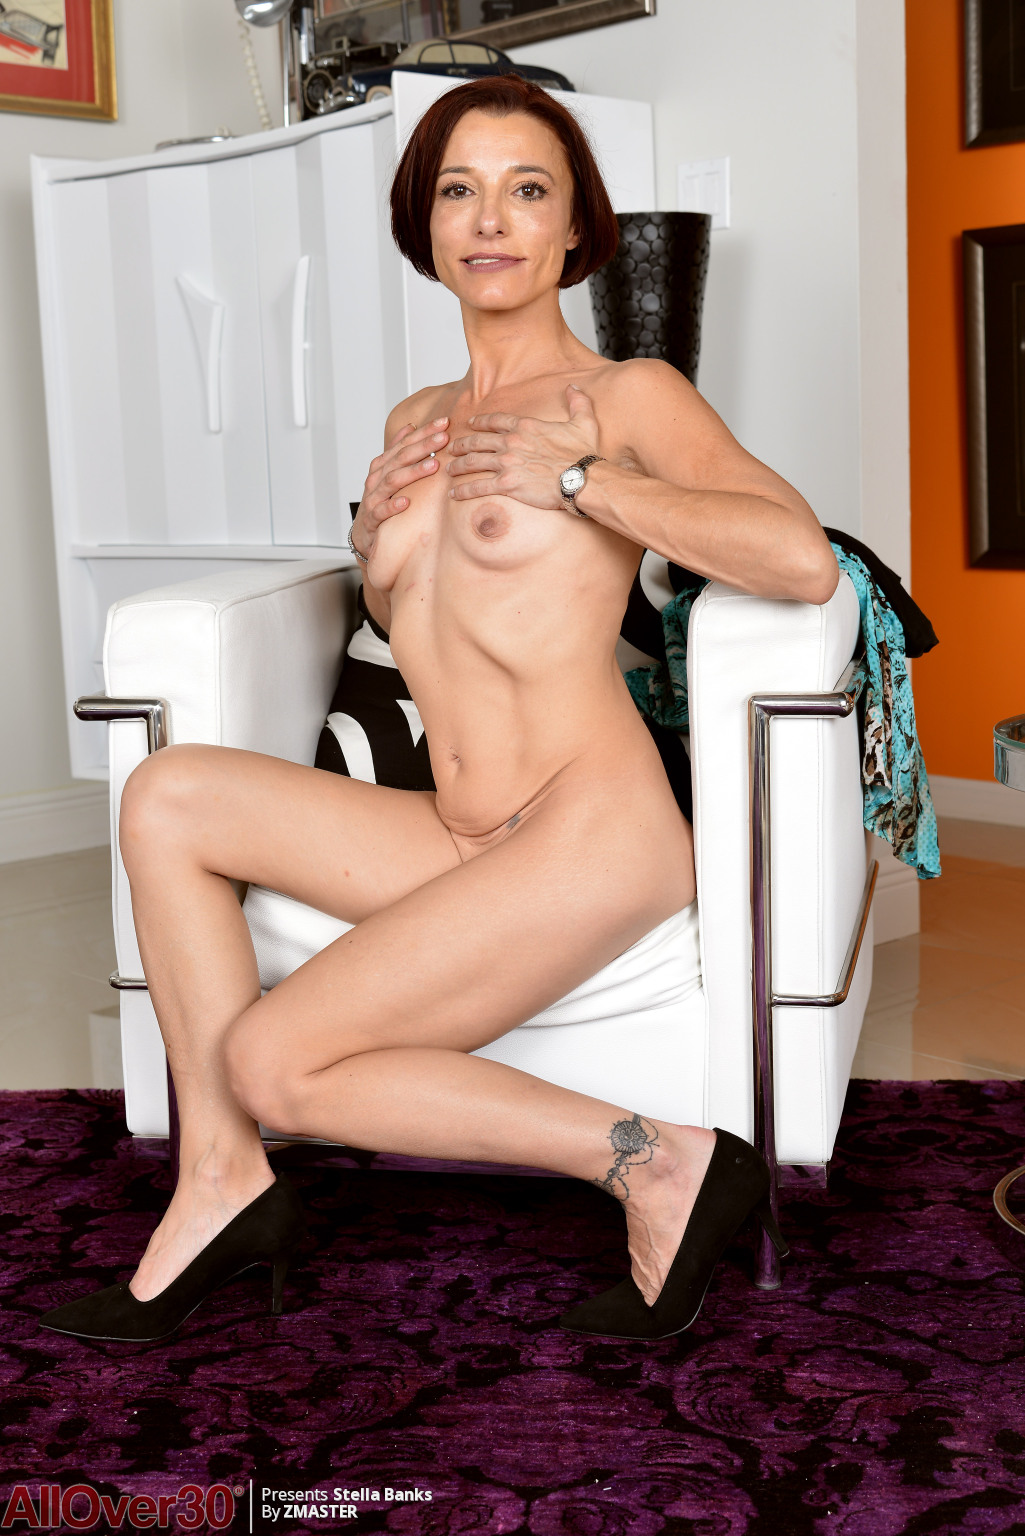 stella-banks-slender-mature-housewife-11